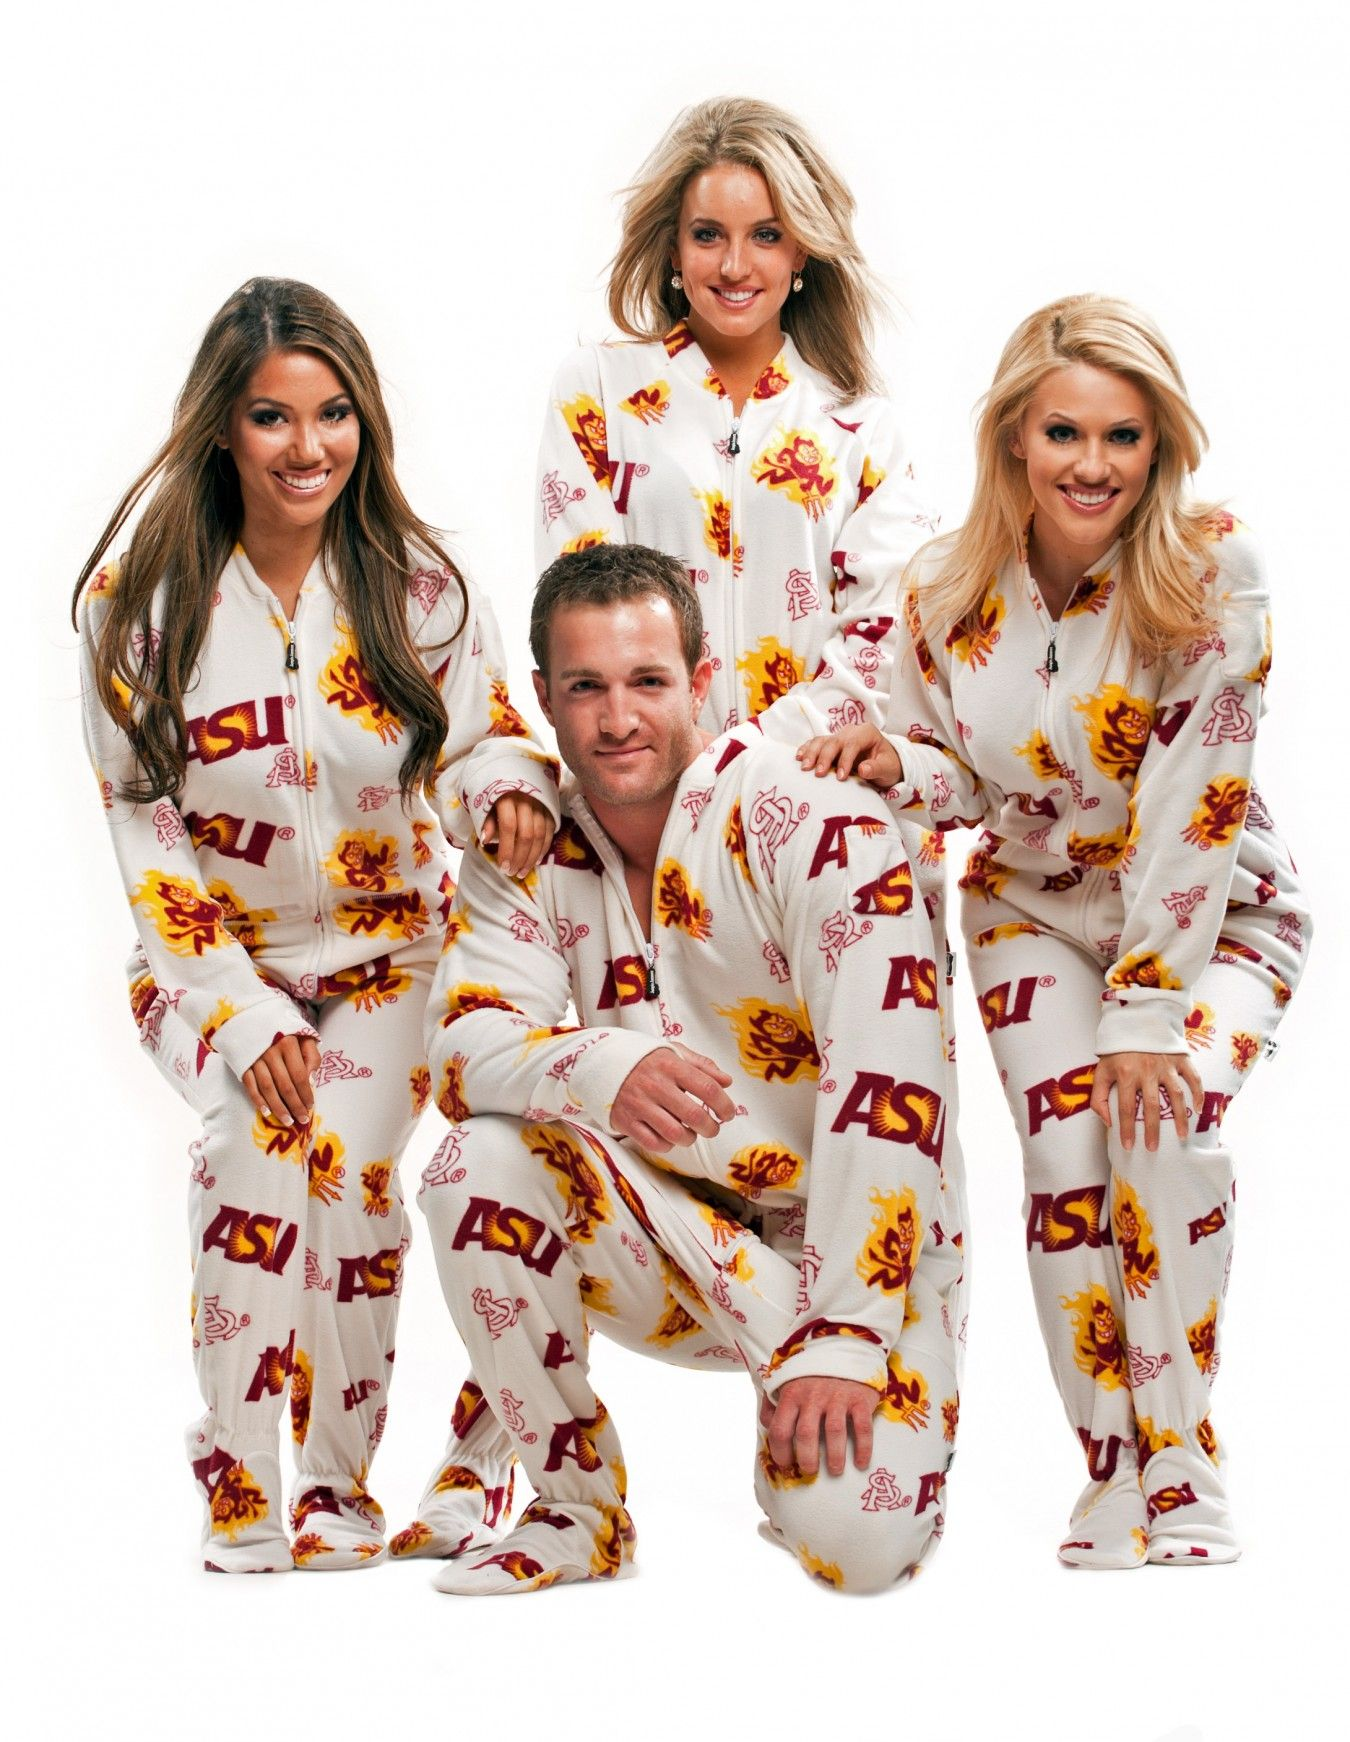 297edca27 Fun footed ASU pj's! Maybe I should get them for the whole family... ha ha!  www.jumpinjammerz.com